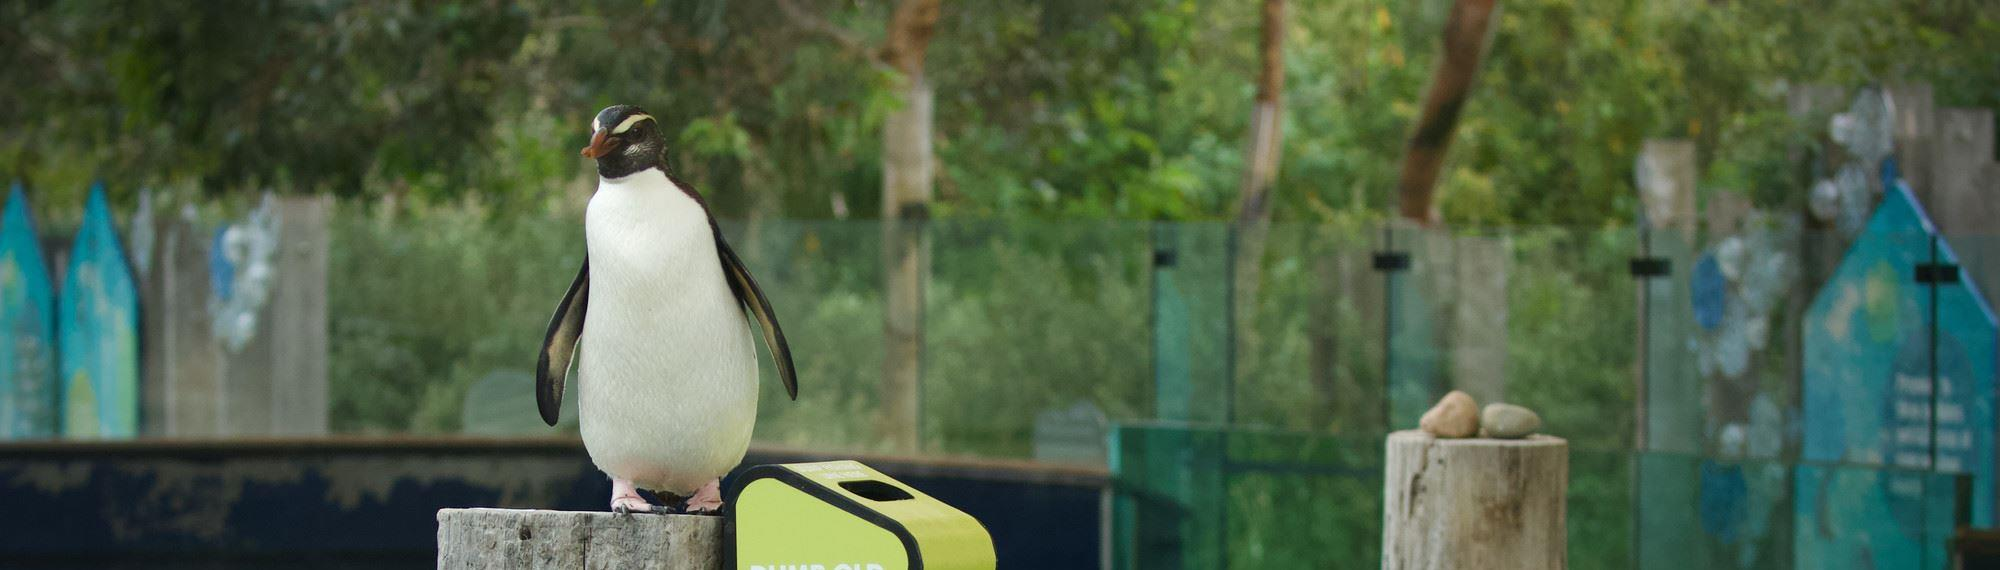 A Fiordland Penguin standing on a post next to a Seal the Loop bin at Melbourne Zoo.